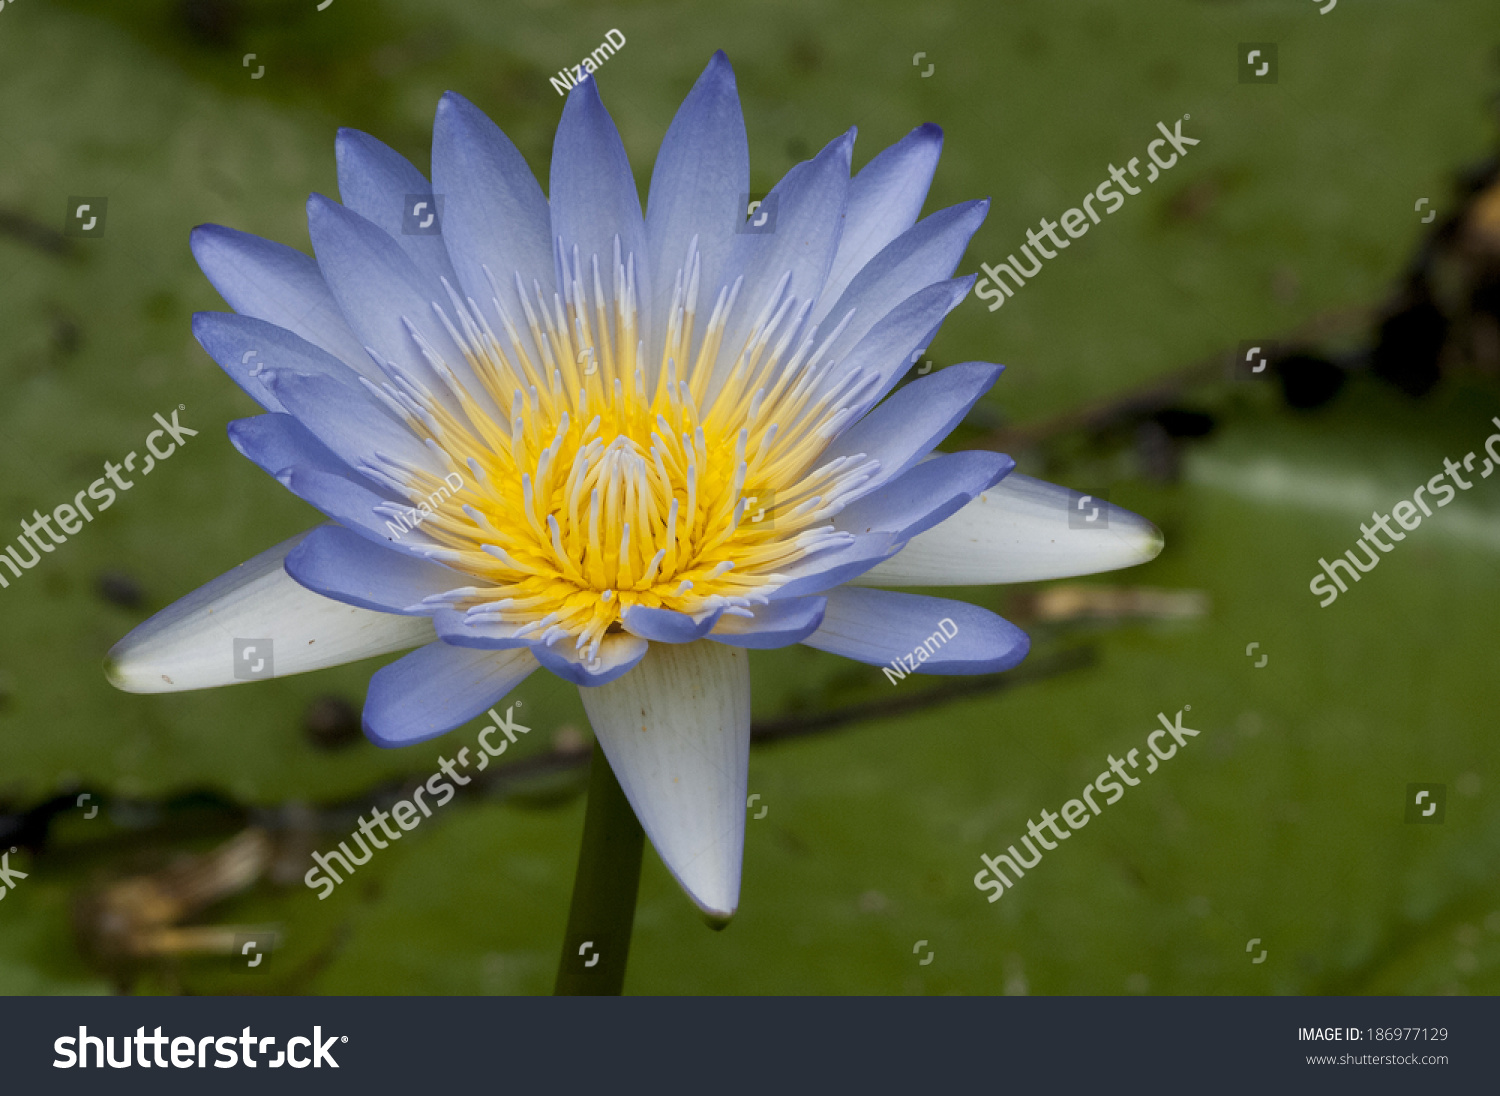 Close blooming blue water lily flower stock photo edit now close up of blooming blue water lily flower botanical name nymphaea spp izmirmasajfo